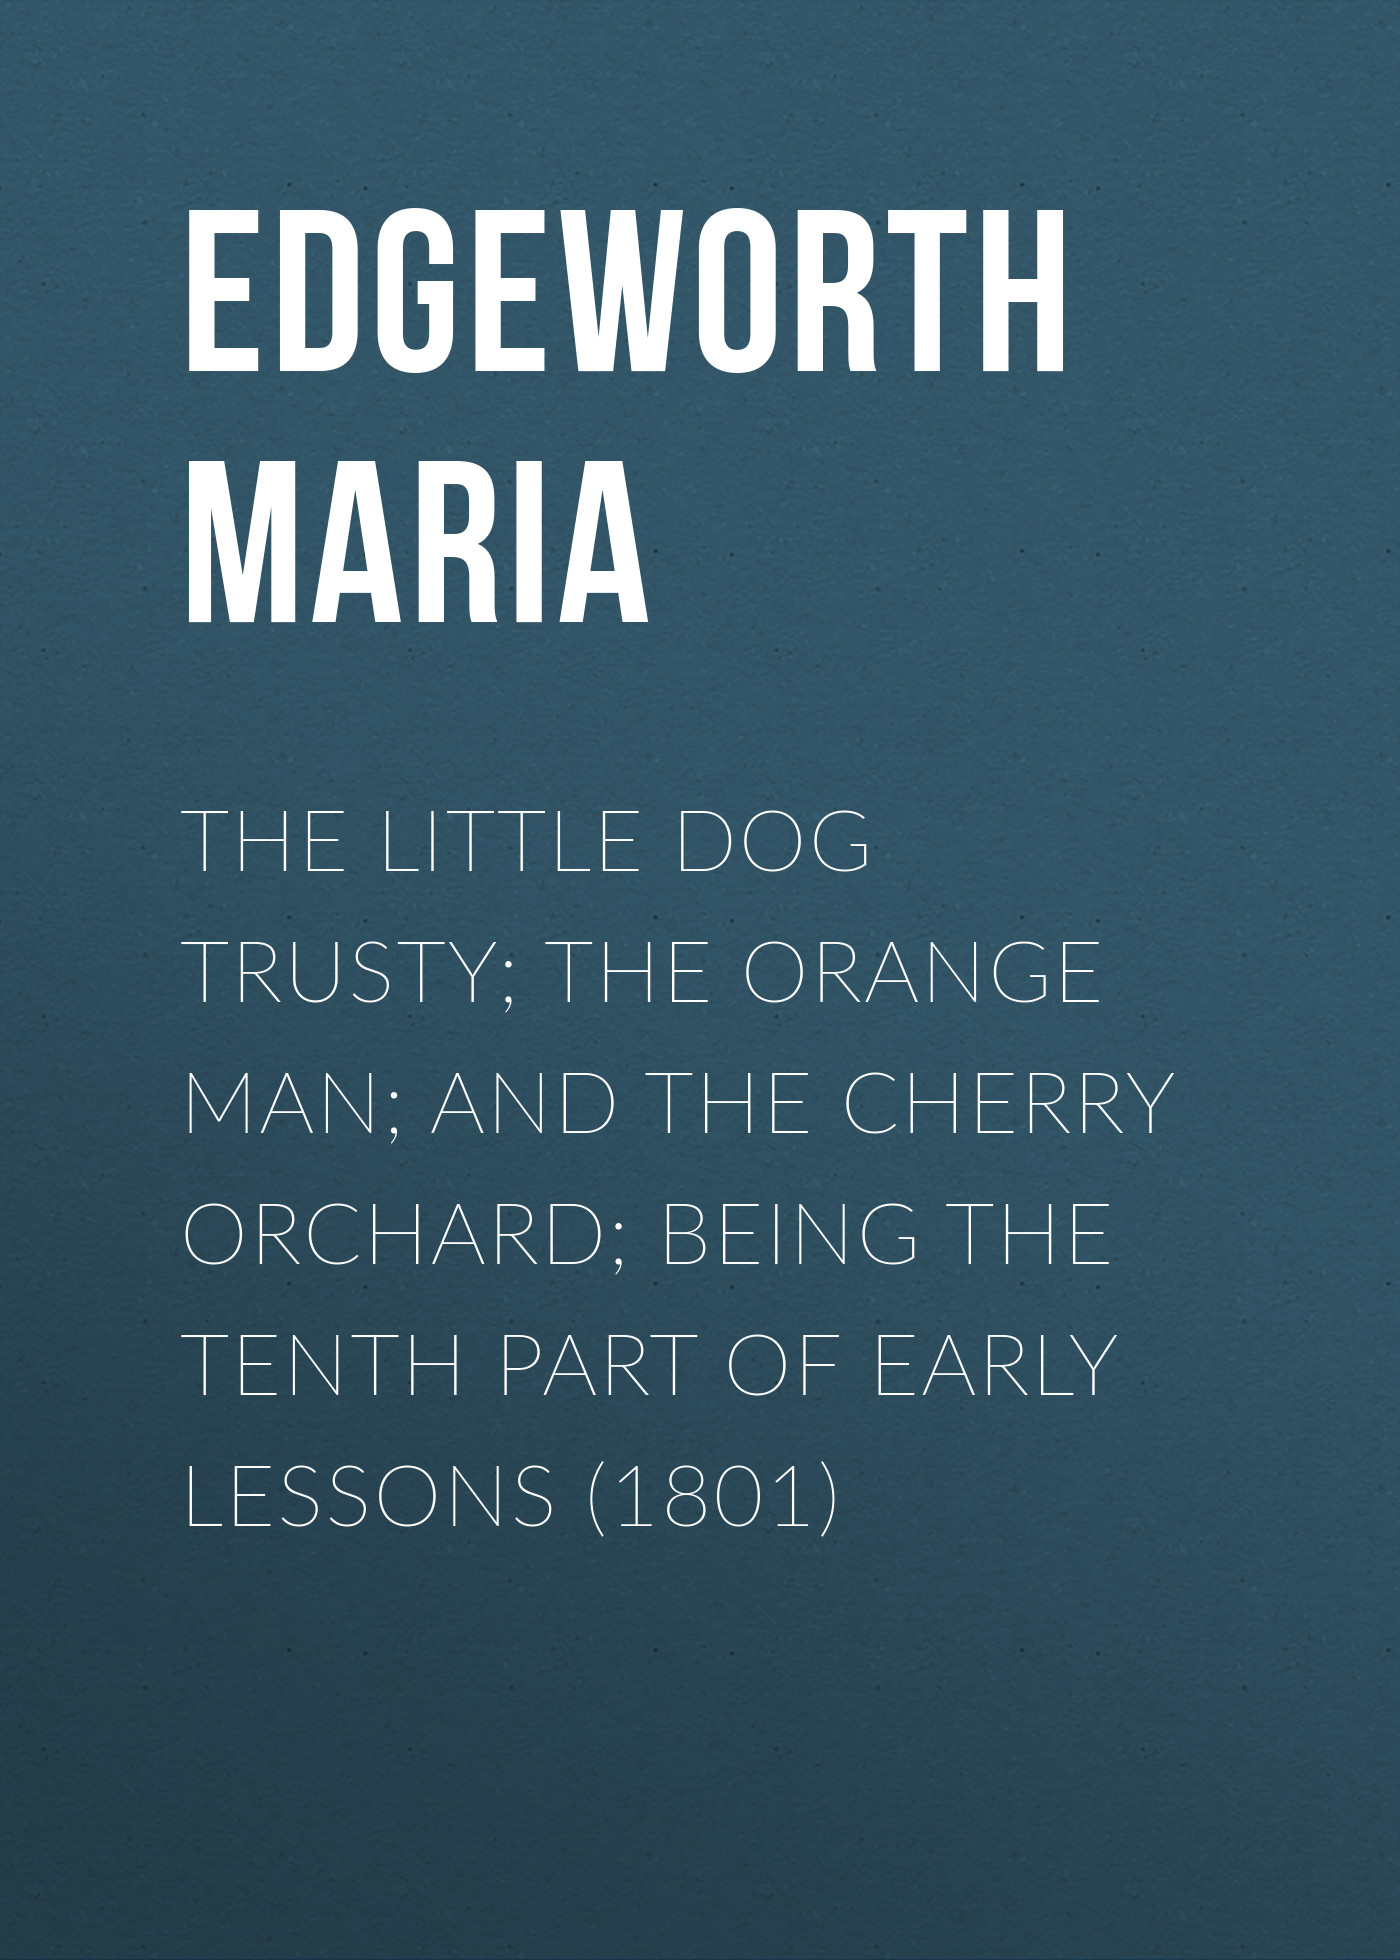 Edgeworth Maria The Little Dog Trusty; The Orange Man; and the Cherry Orchard; Being the Tenth Part of Early Lessons (1801) edgeworth maria the little dog trusty the orange man and the cherry orchard being the tenth part of early lessons 1801